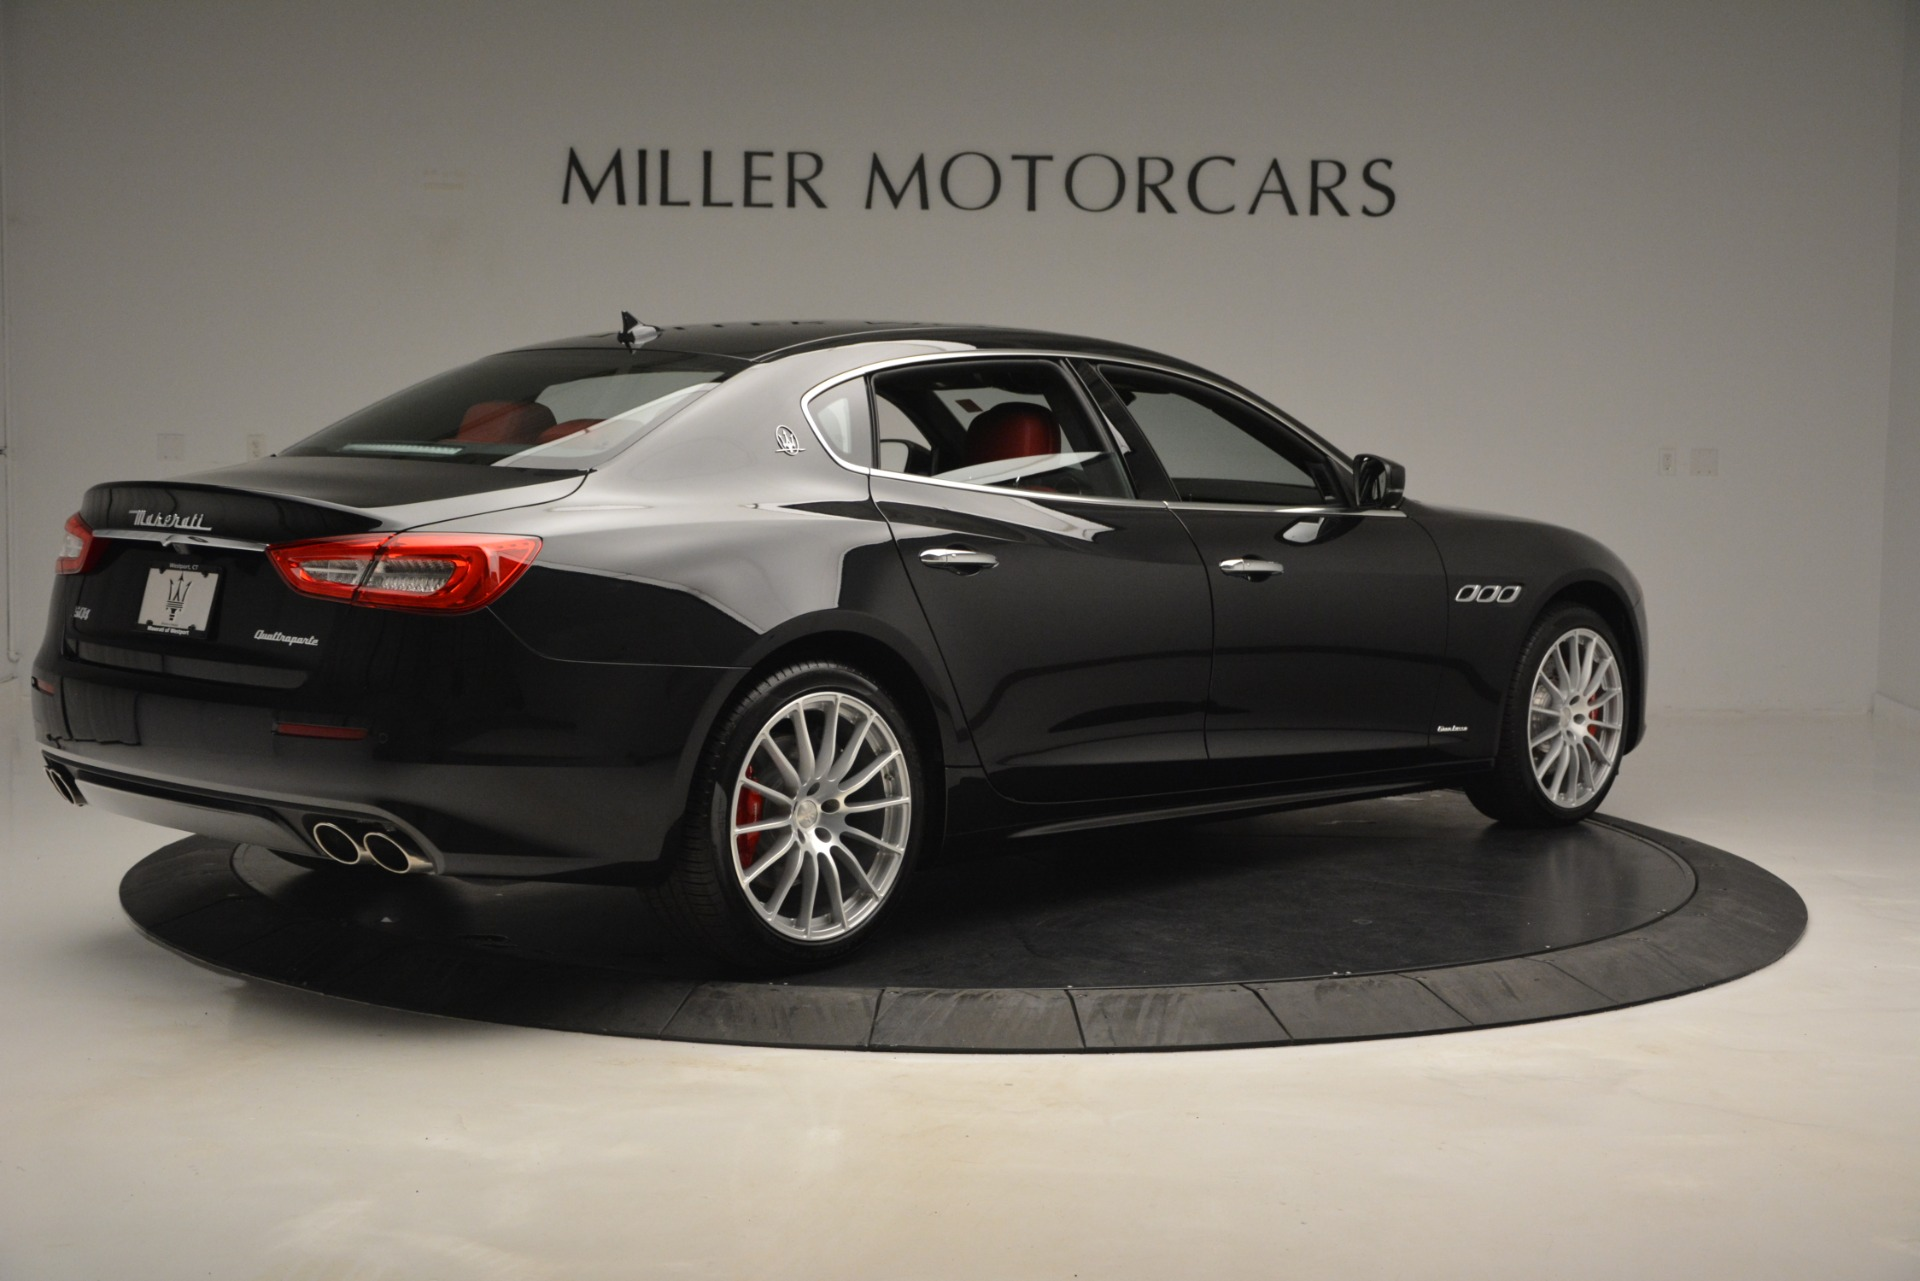 New 2019 Maserati Quattroporte S Q4 GranLusso For Sale In Greenwich, CT. Alfa Romeo of Greenwich, W629 2718_p8